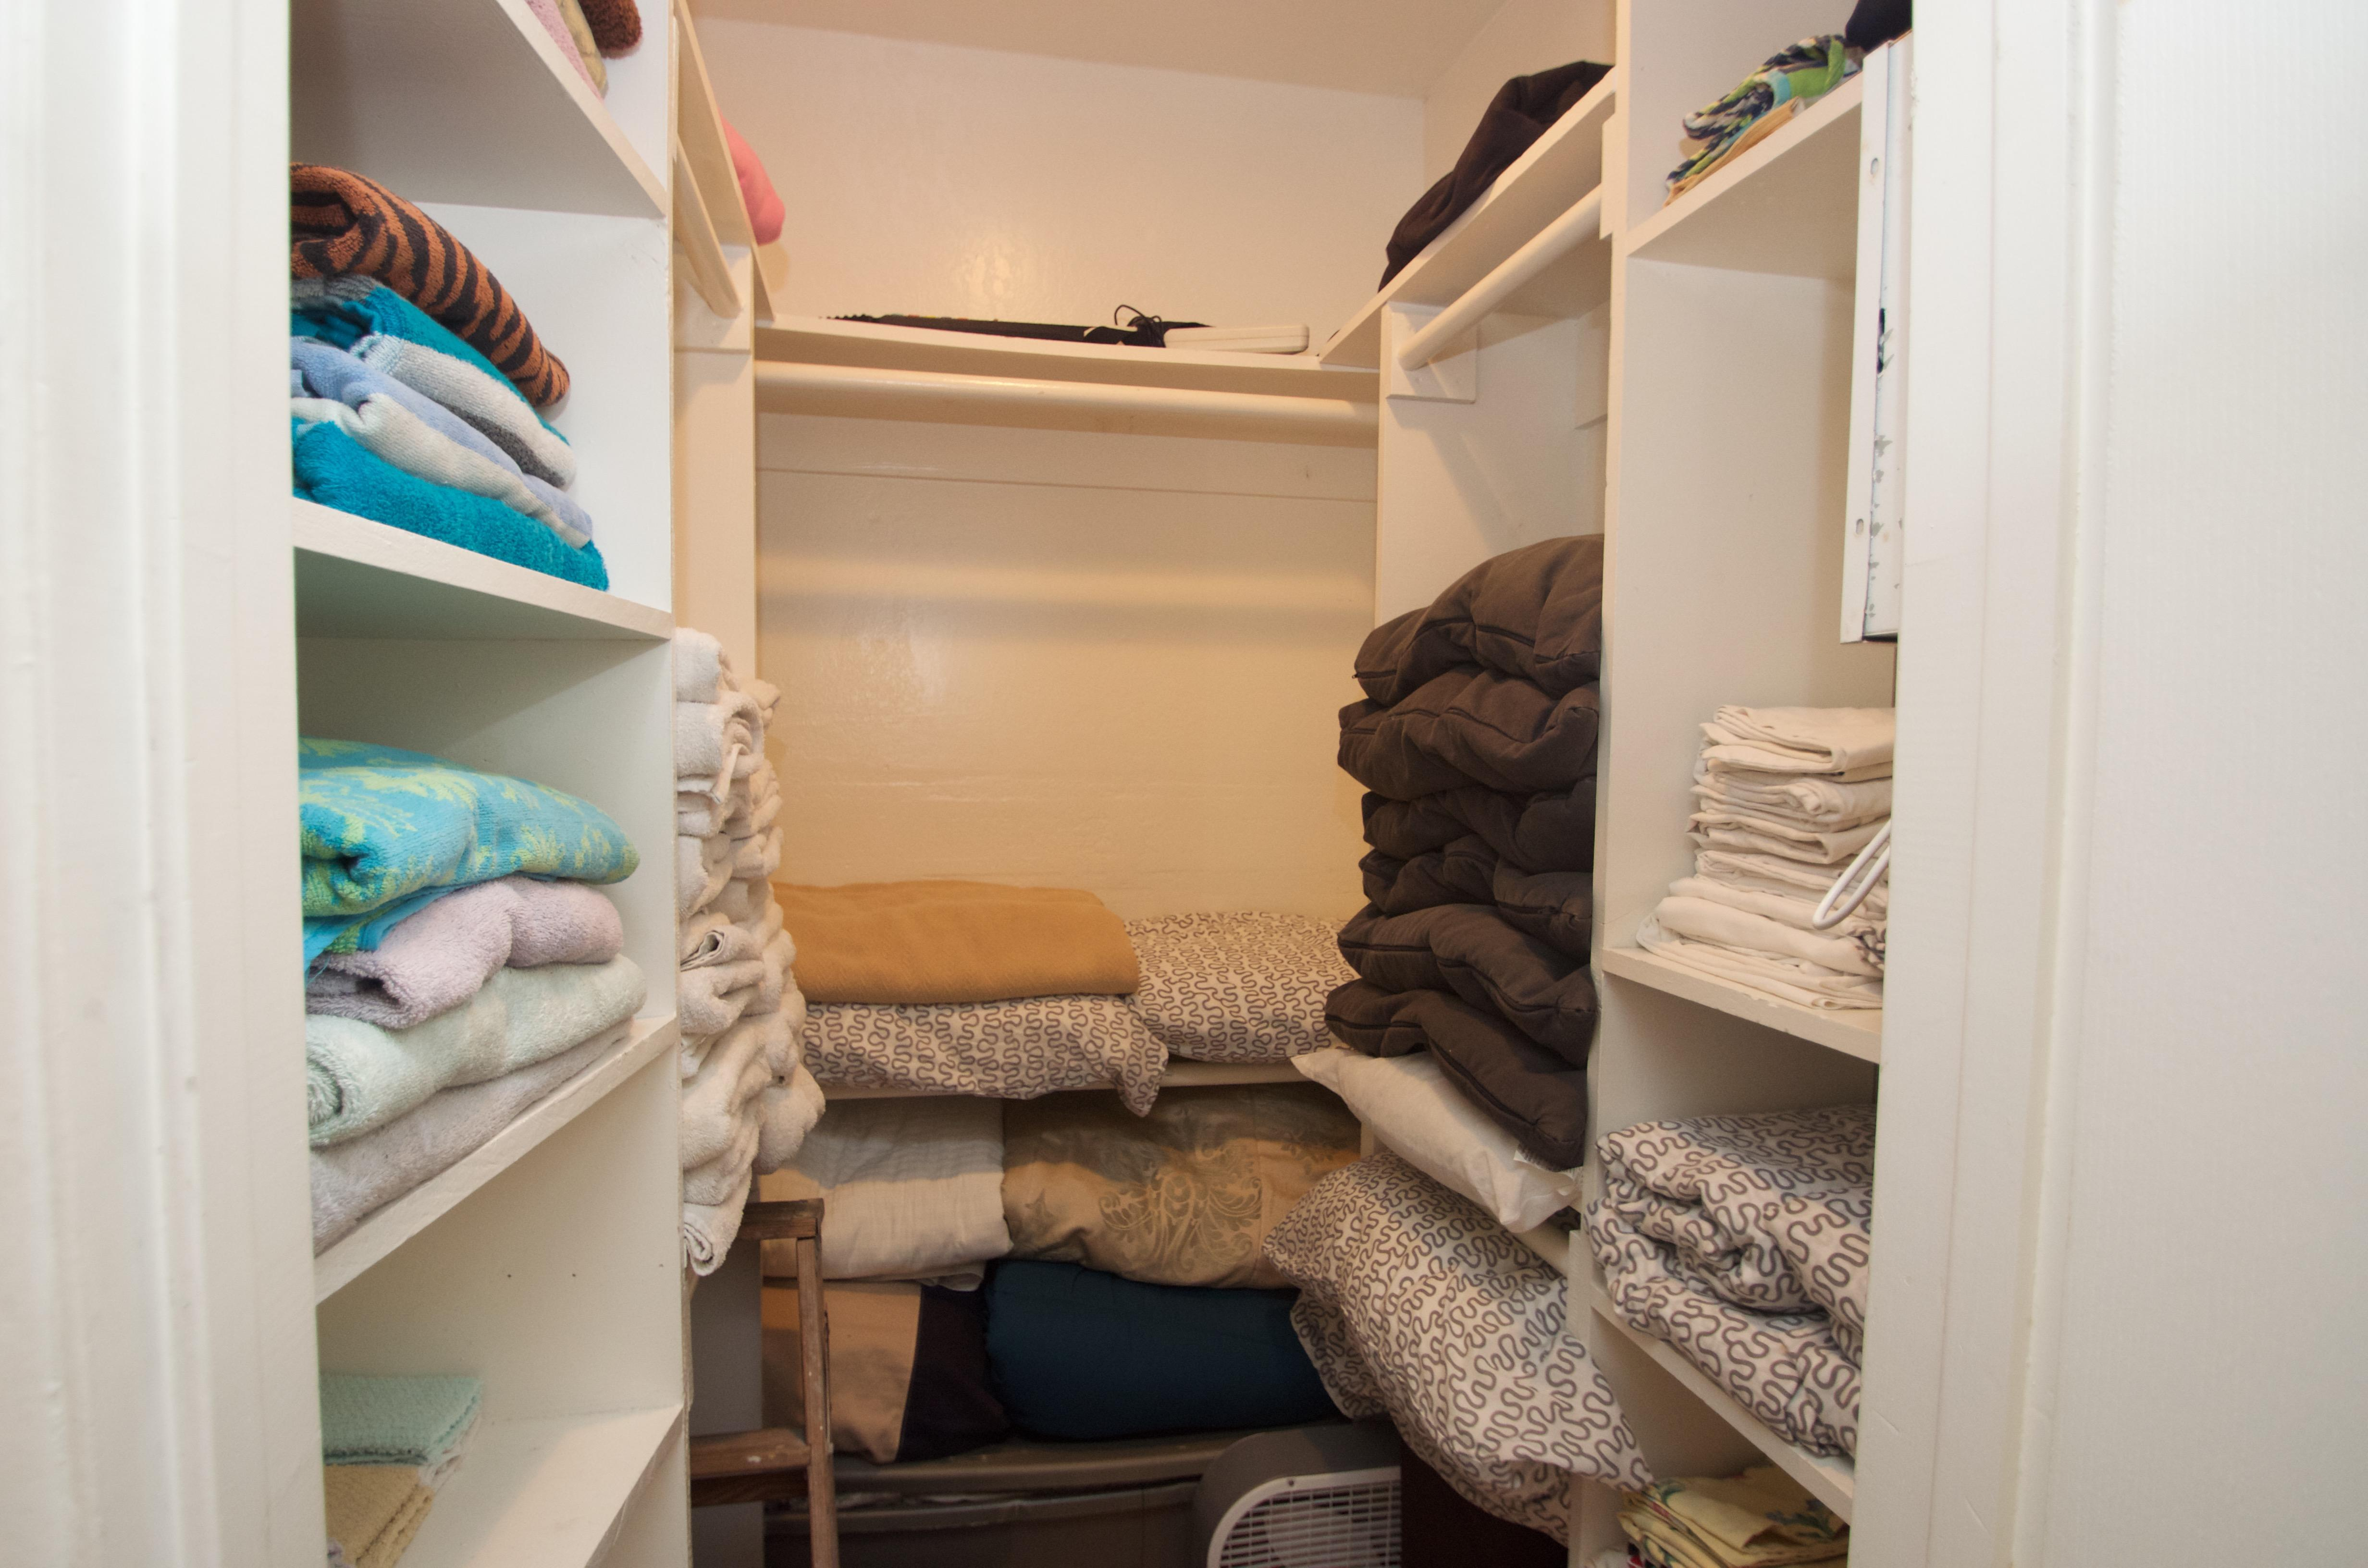 Lots of extra linens and towels